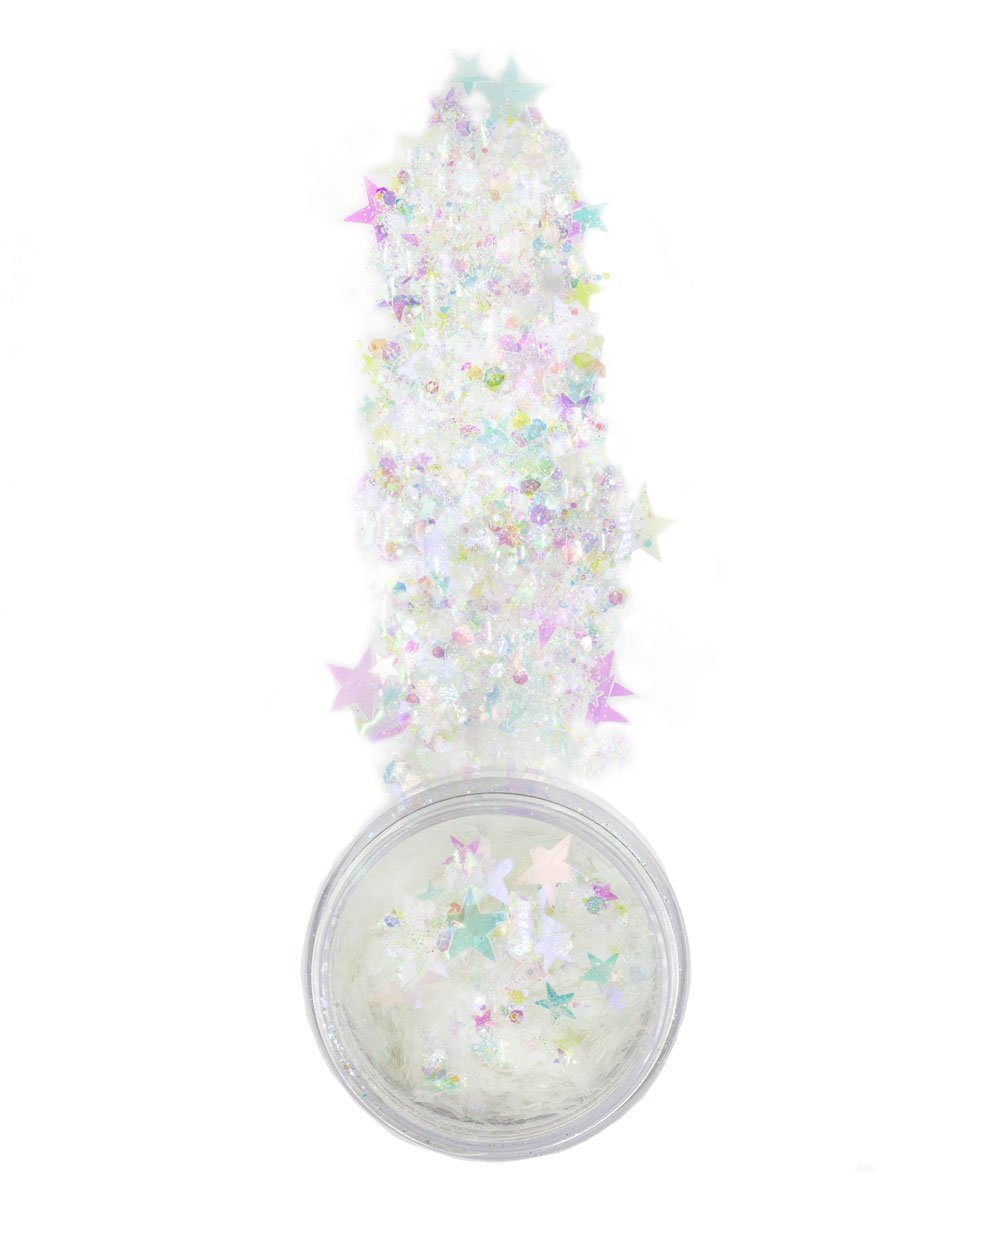 iHeartRaves Chunky Moon Dust XL Disco Dreams Glitter for Festivals Beauty Makeup Face Body Hair Nails Raves (15 grams)